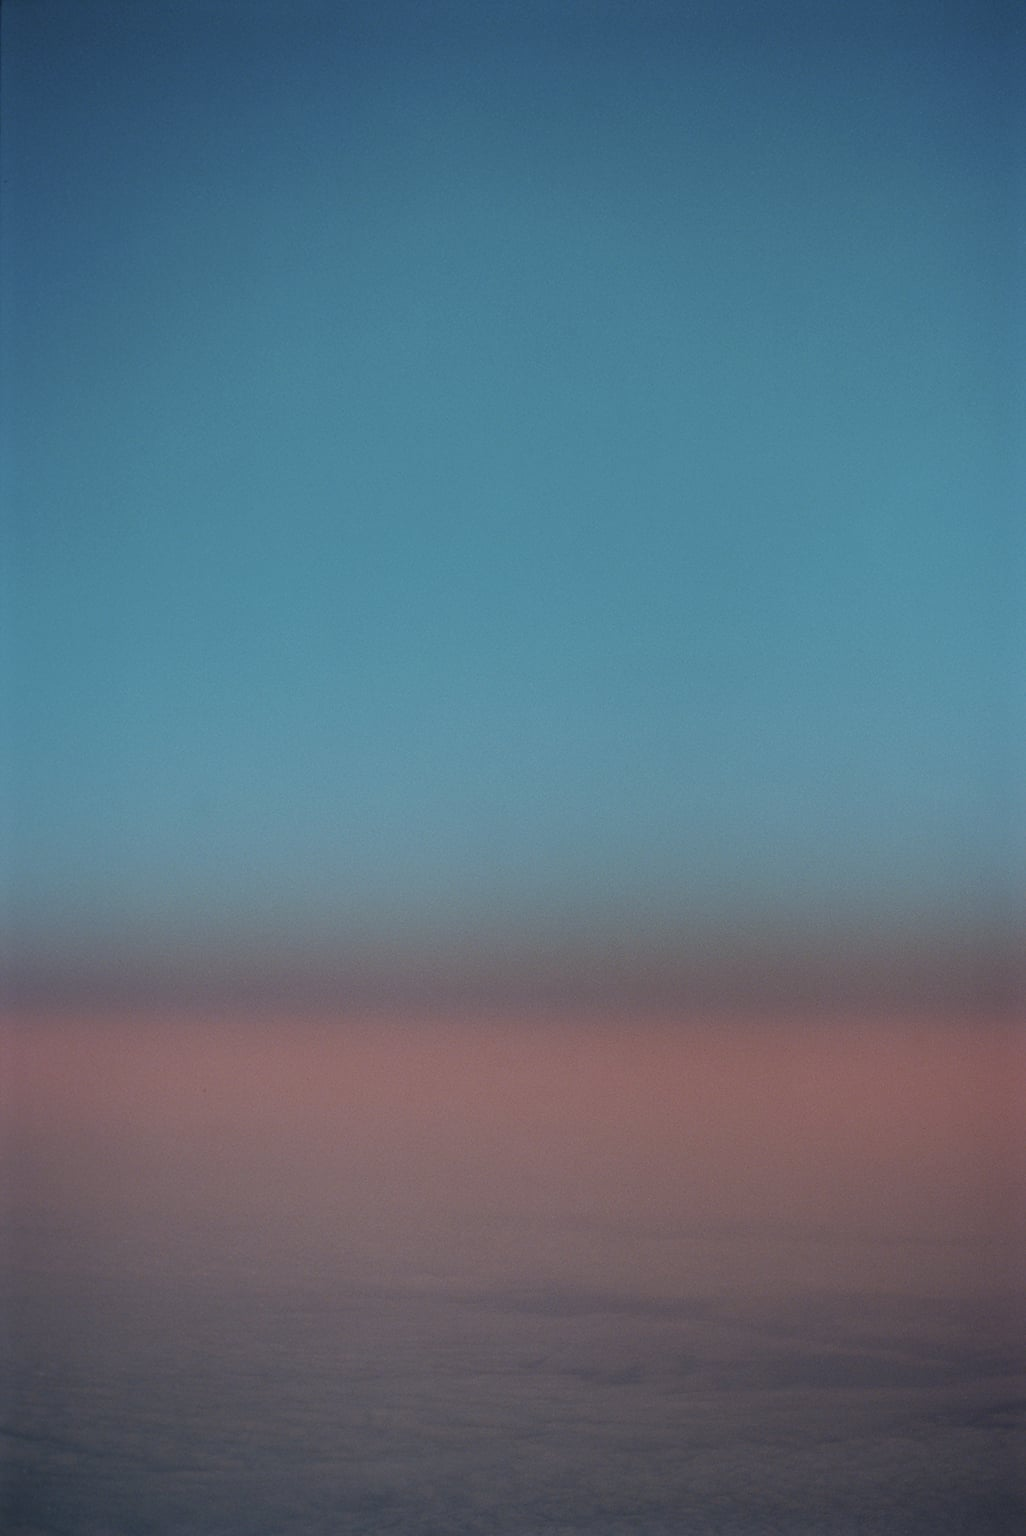 A selection of works from the Neue Welt series by Wolfgang Tillmans, 2009–2012 - © Copyright Wolfgang Tillmans. Courtesy Maureen Paley